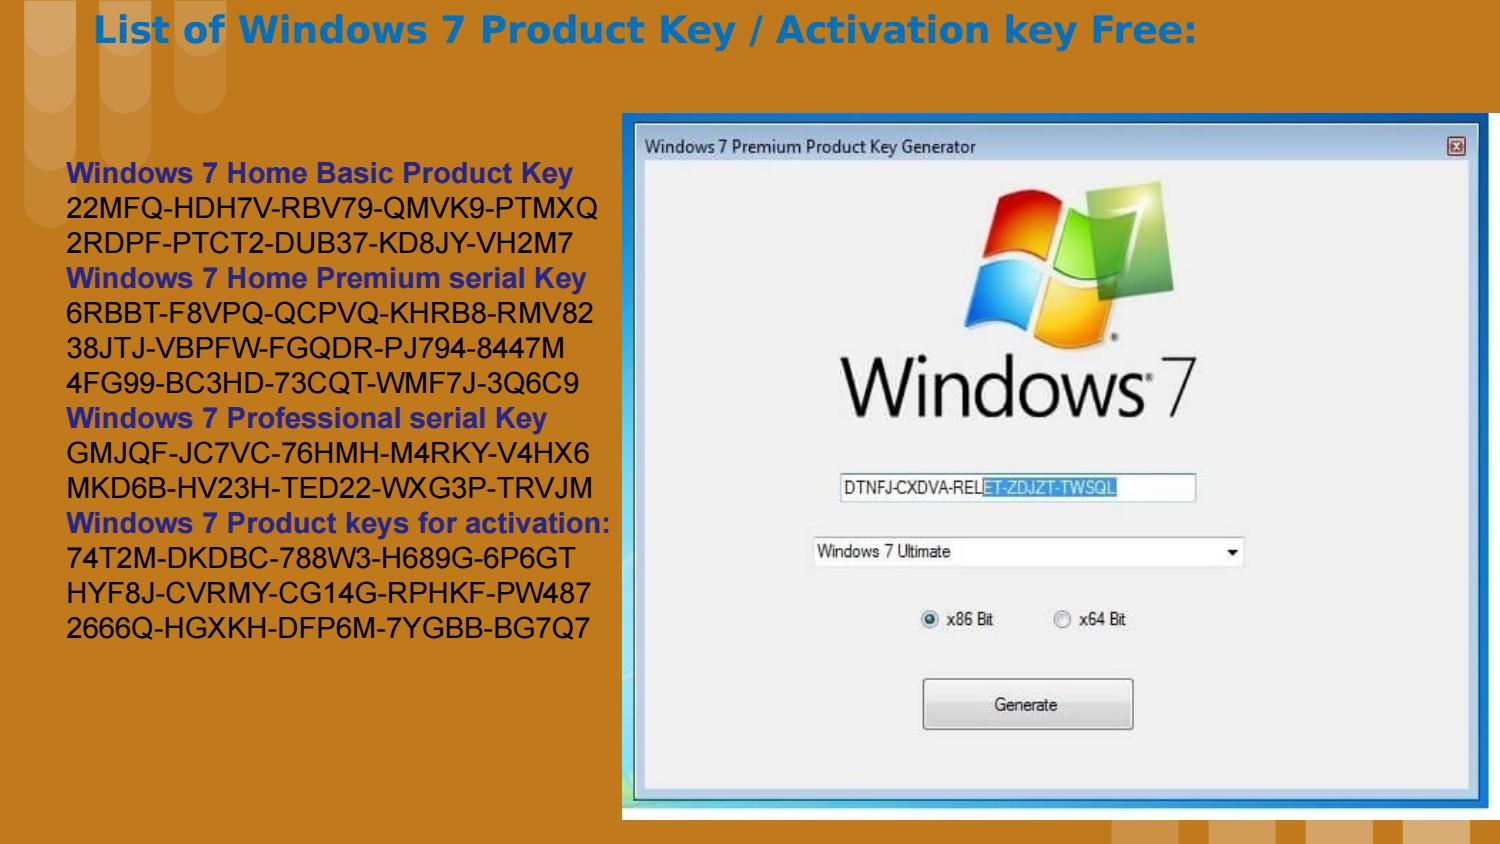 windows 7 product key free list